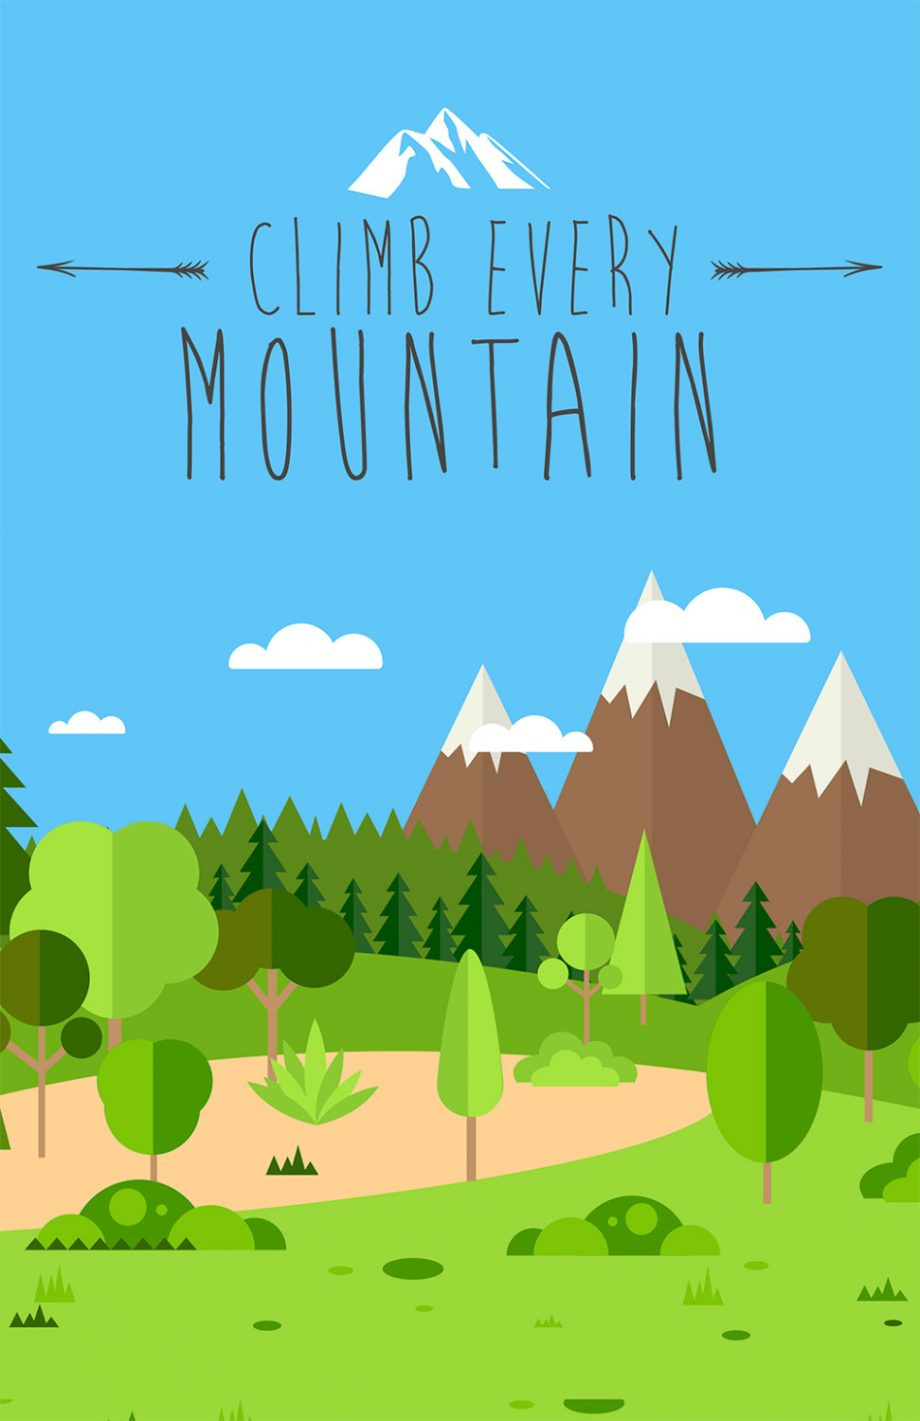 Climb Every Mountain Print Illustration Inspirational Art Print Vintage Giclee on Cotton Canvas and Satin Photo Paper